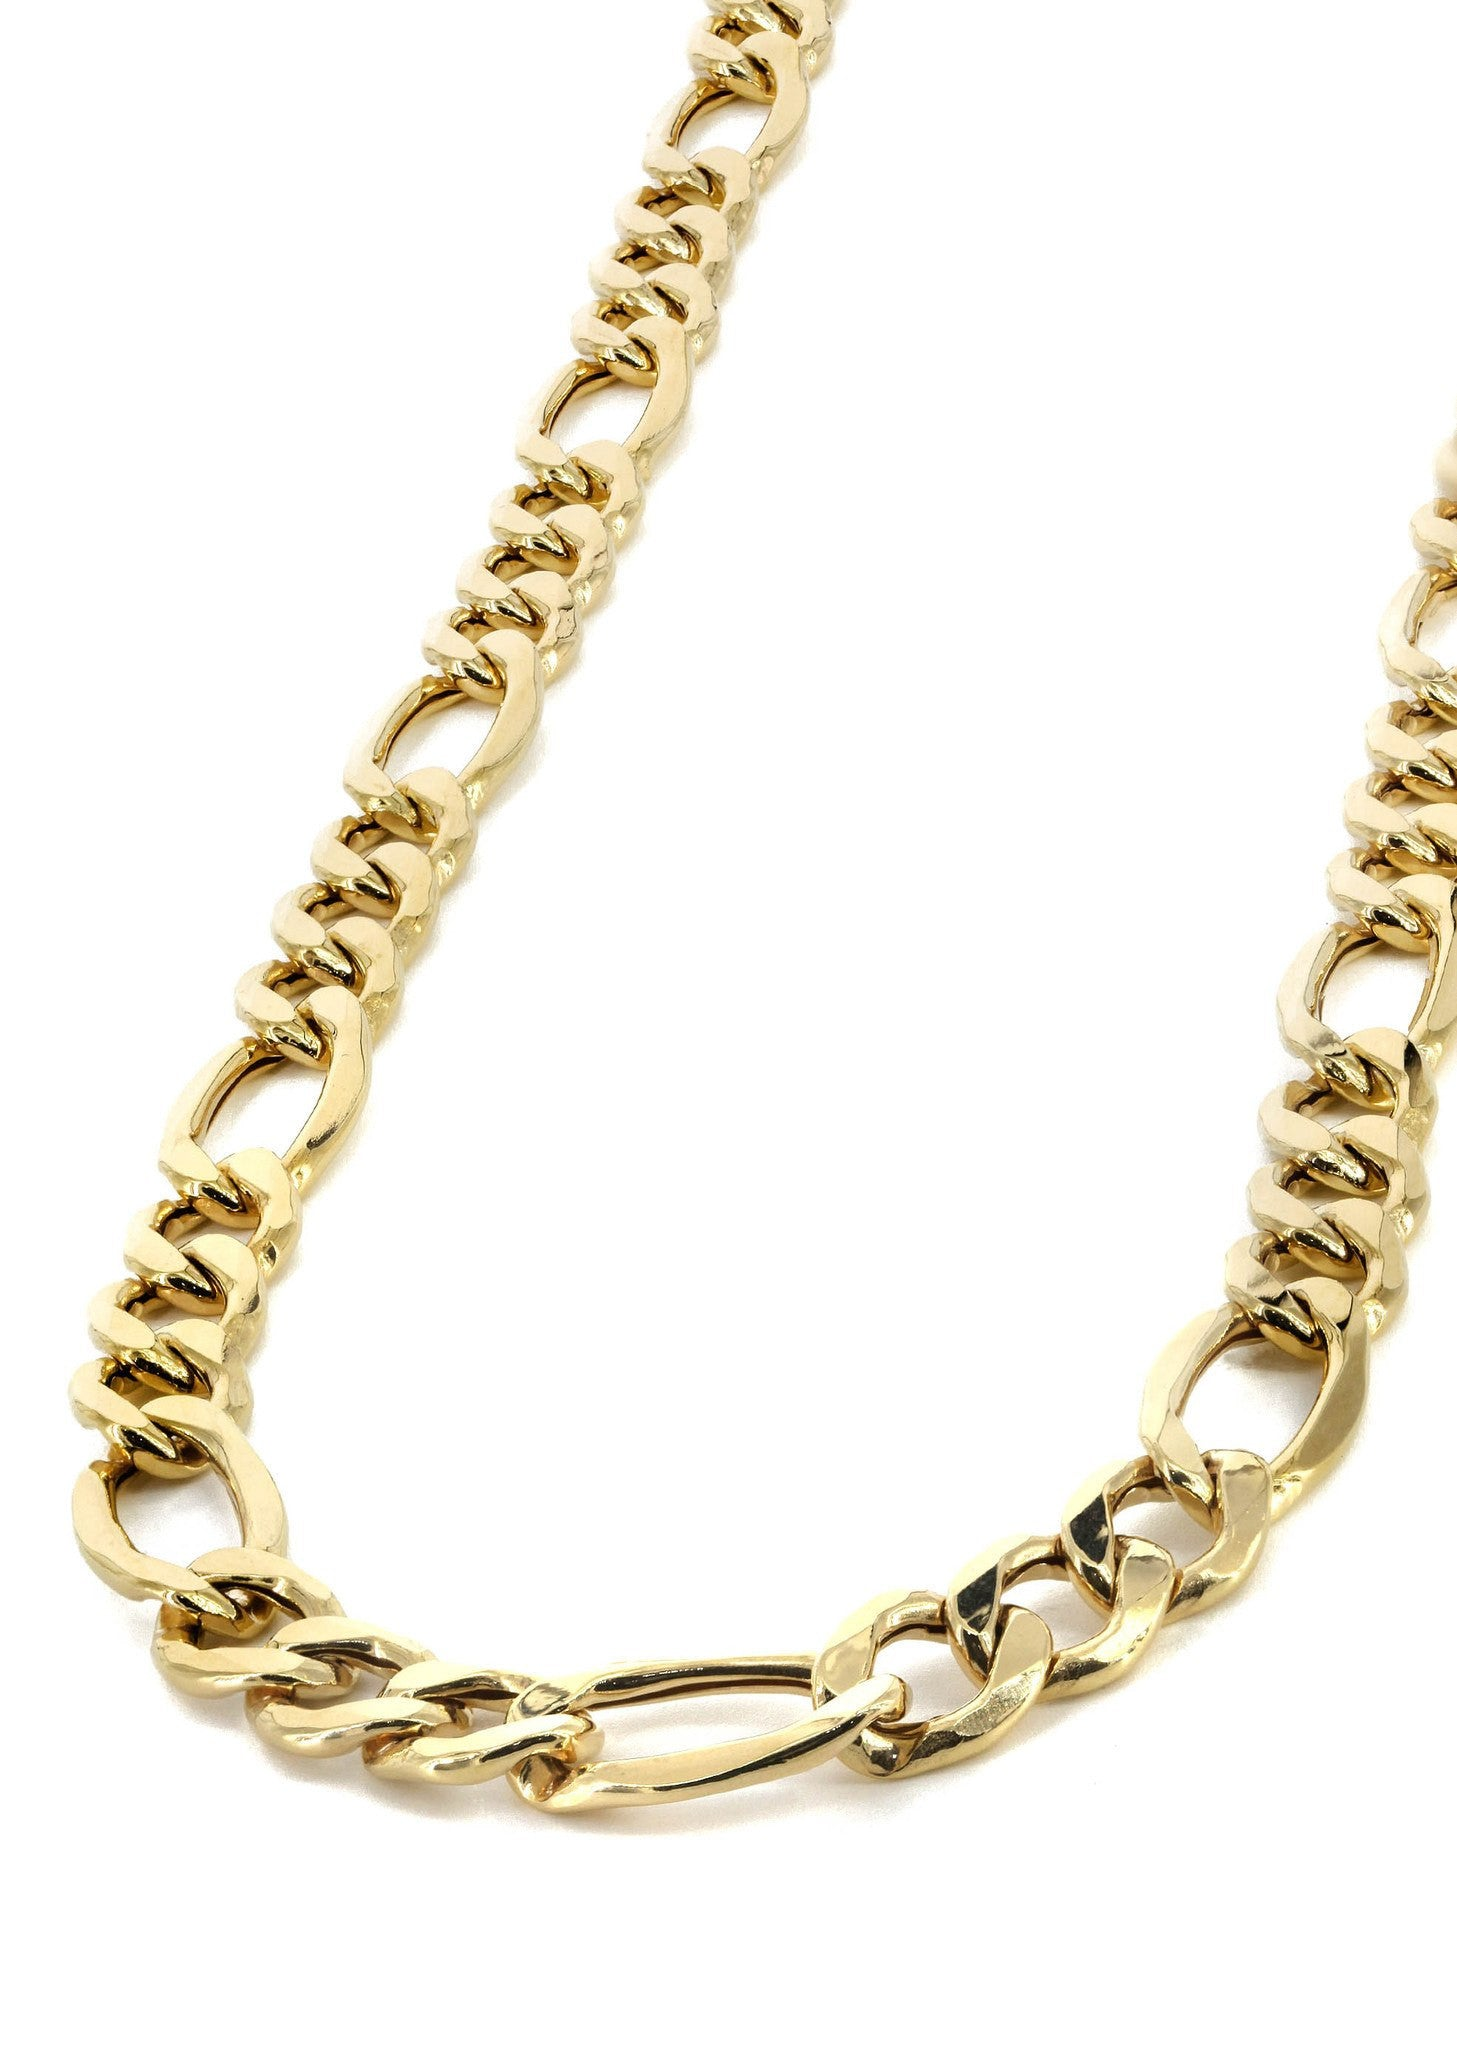 cd317fa25 Gold Chain - Mens Solid Figaro Chain 10k Gold – FrostNYC